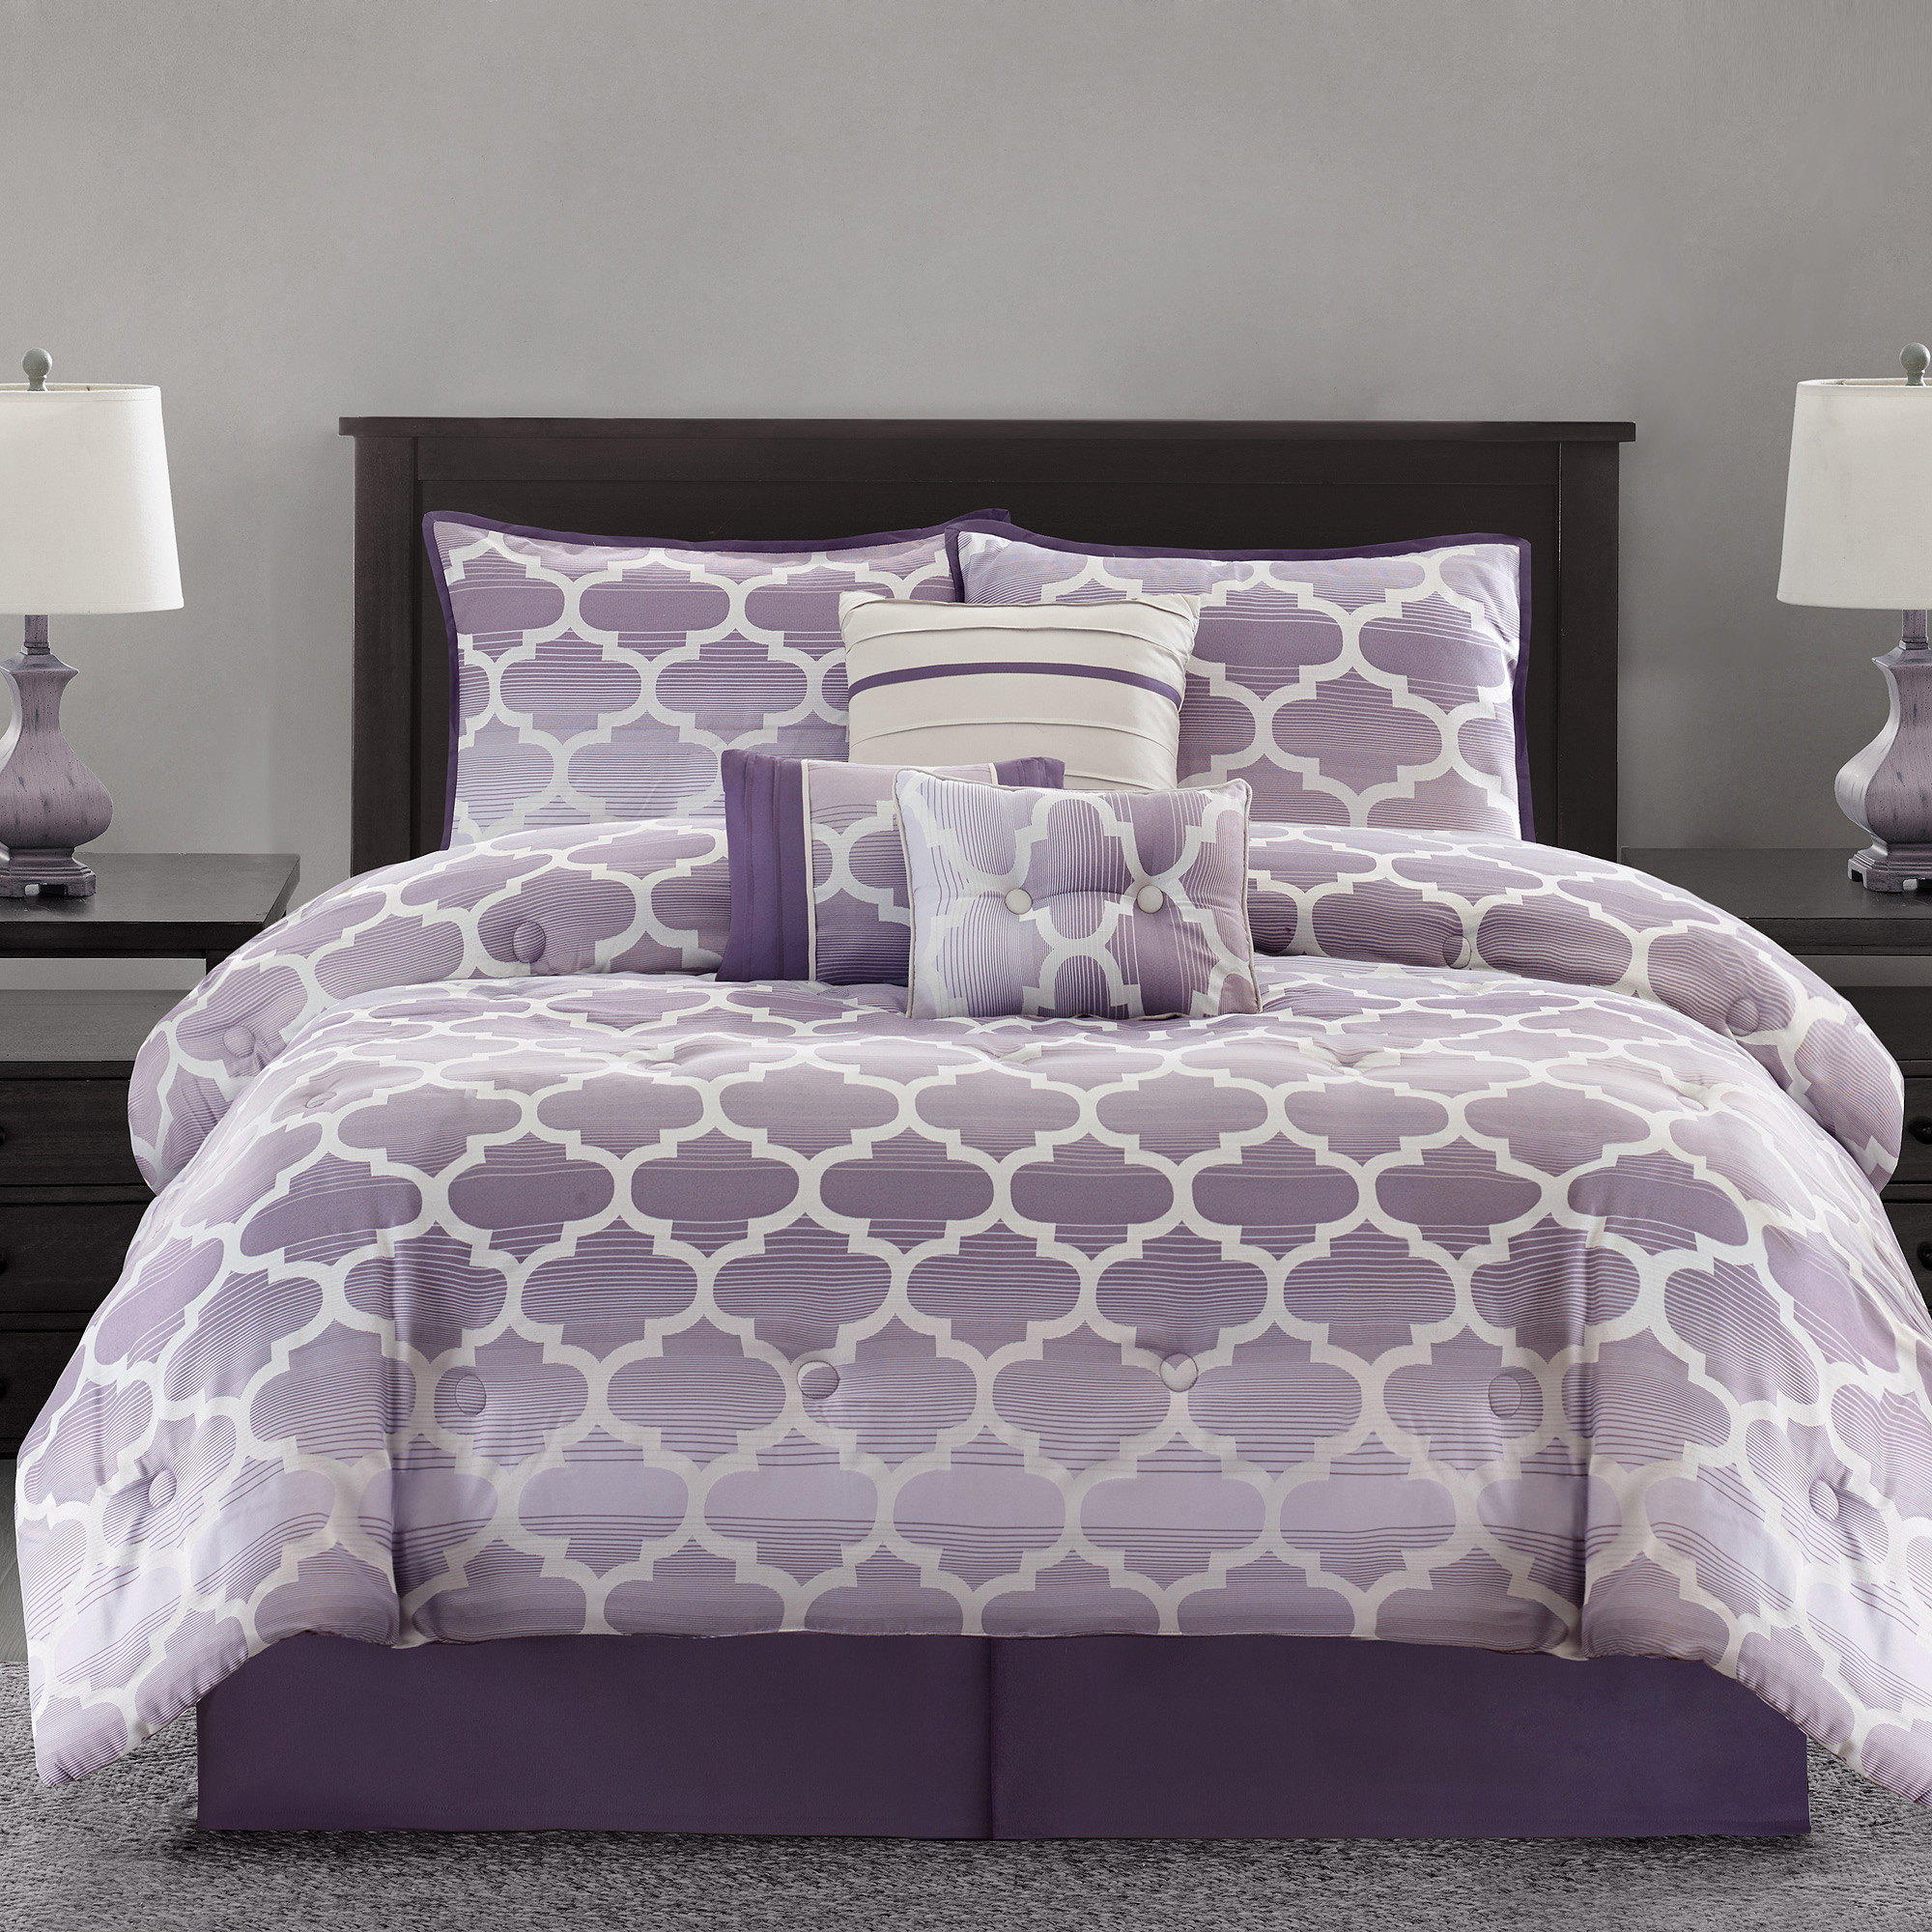 Mainstays Ombre Fretwork 7-Piece Bedding Comforter Set